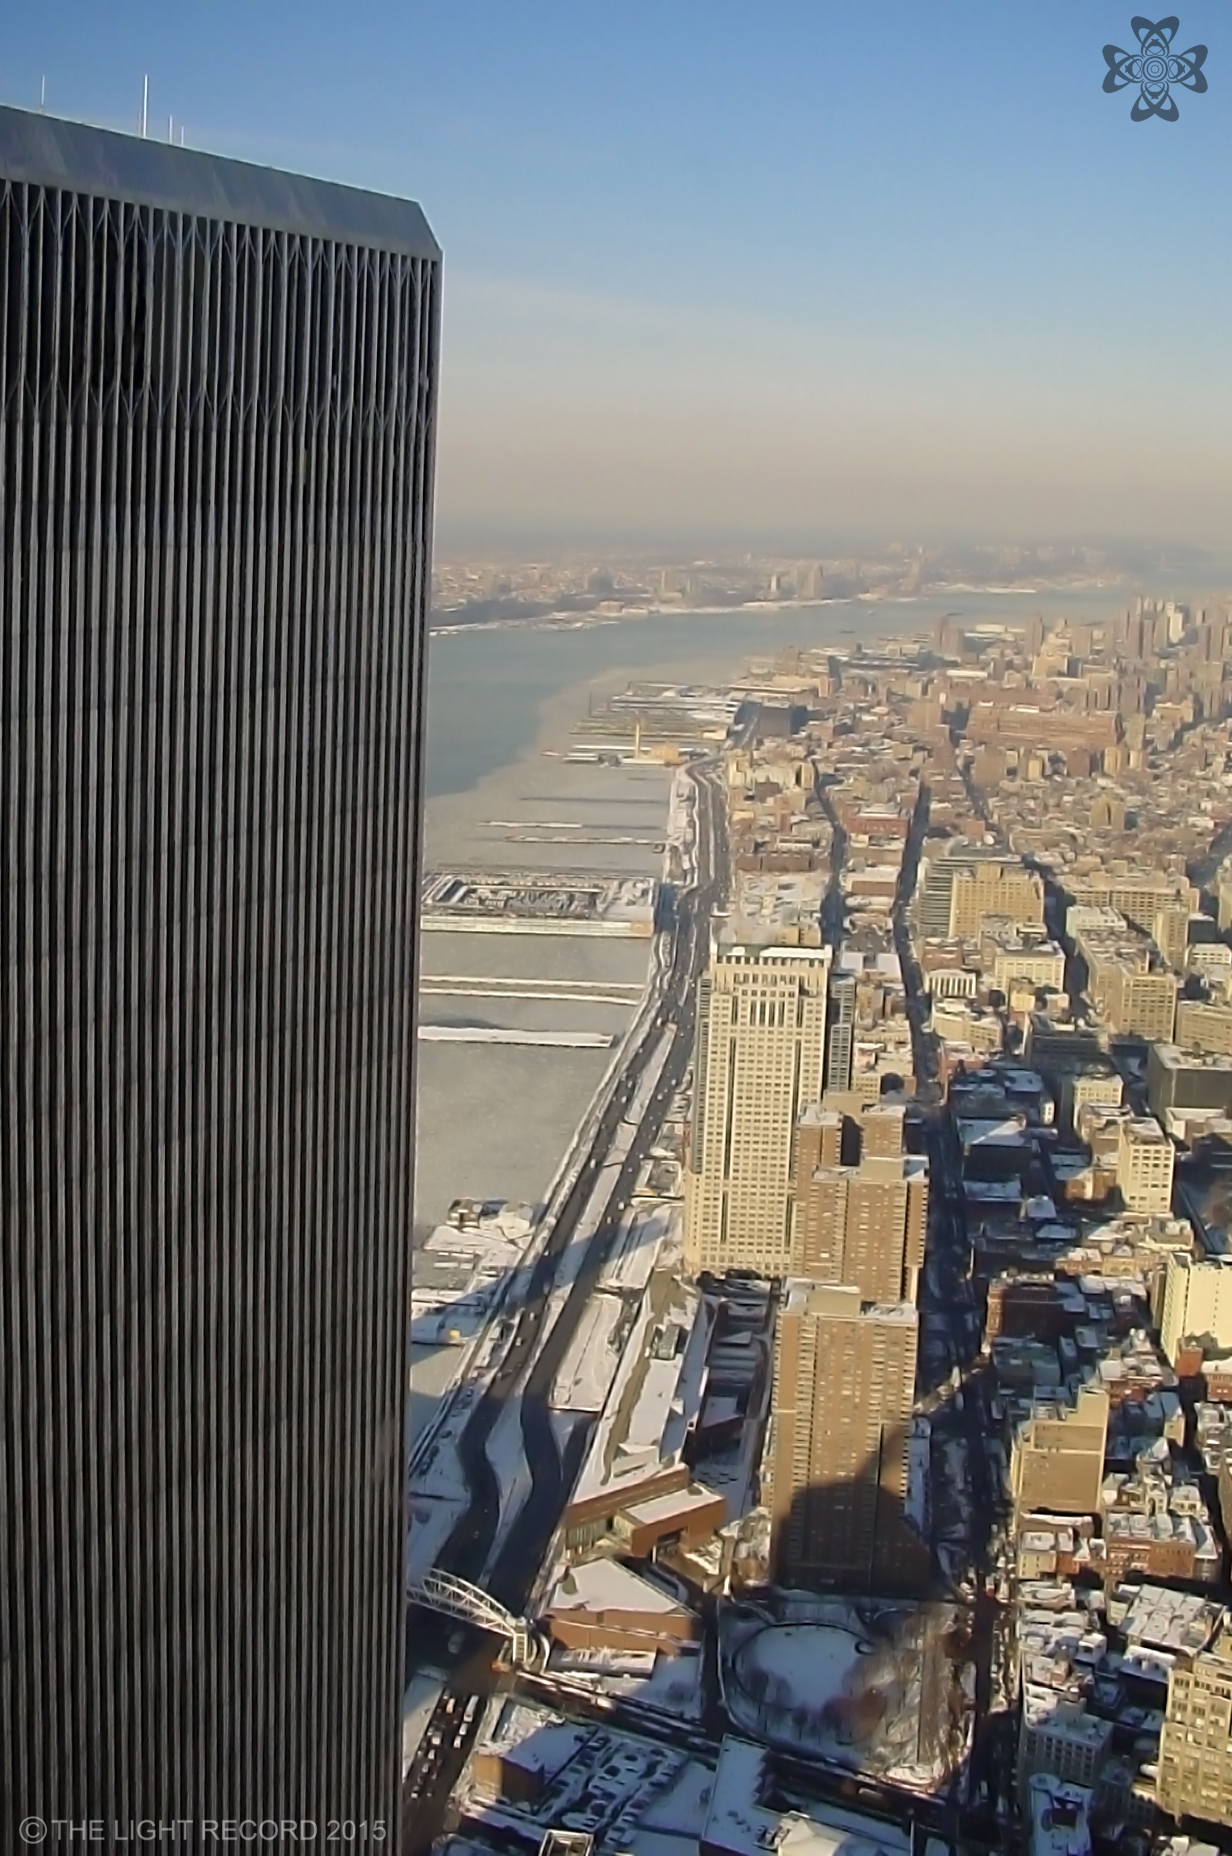 The greatest feature of the Old WTC was the open air observatory at the top. Here, the North Tower stands over the half-frozen Hudson River.